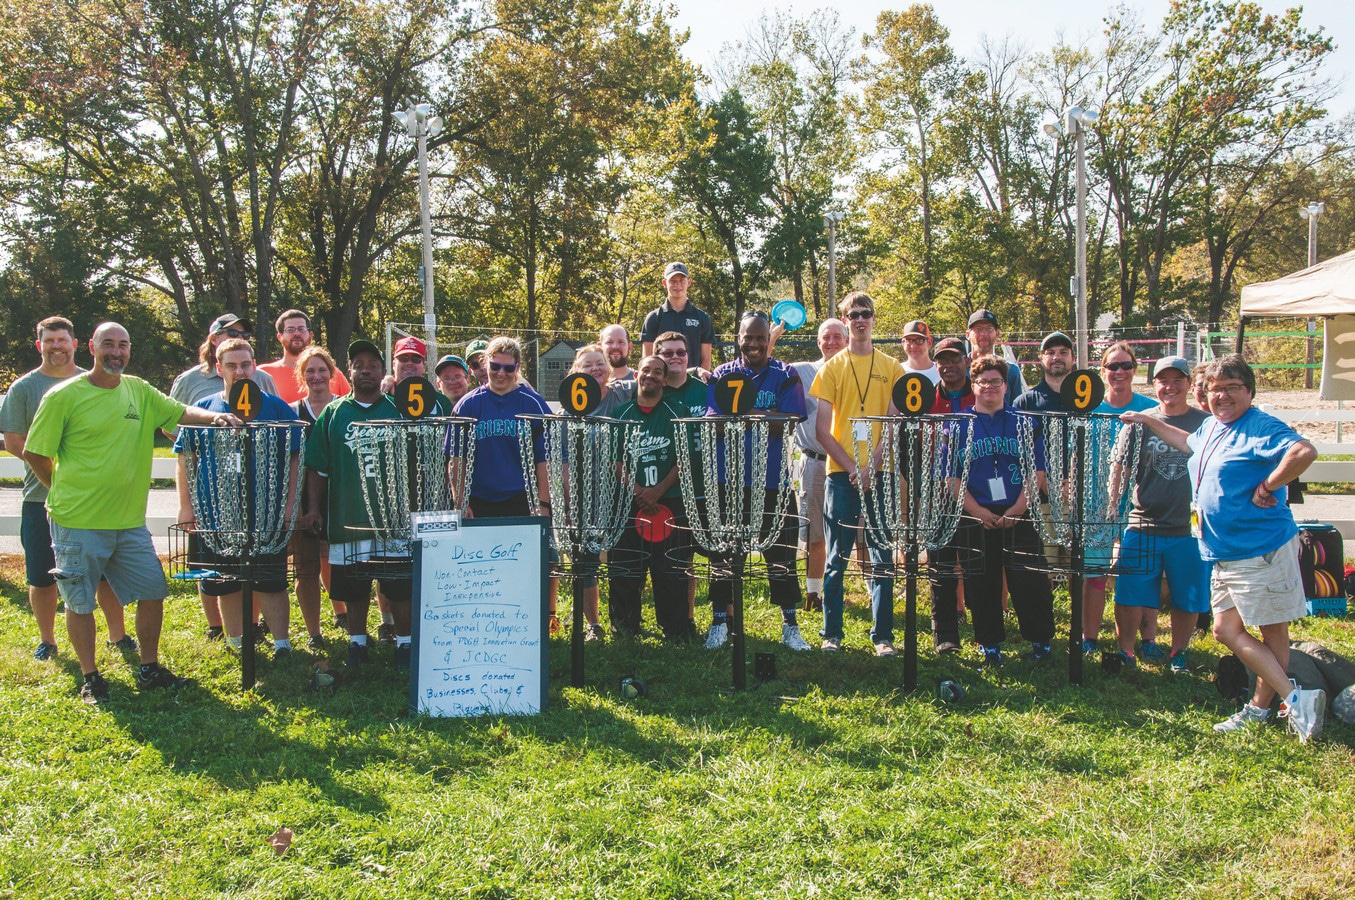 Group of athletes, volunteers, and SOMO staff members smile while posing together behind disc golf baskets